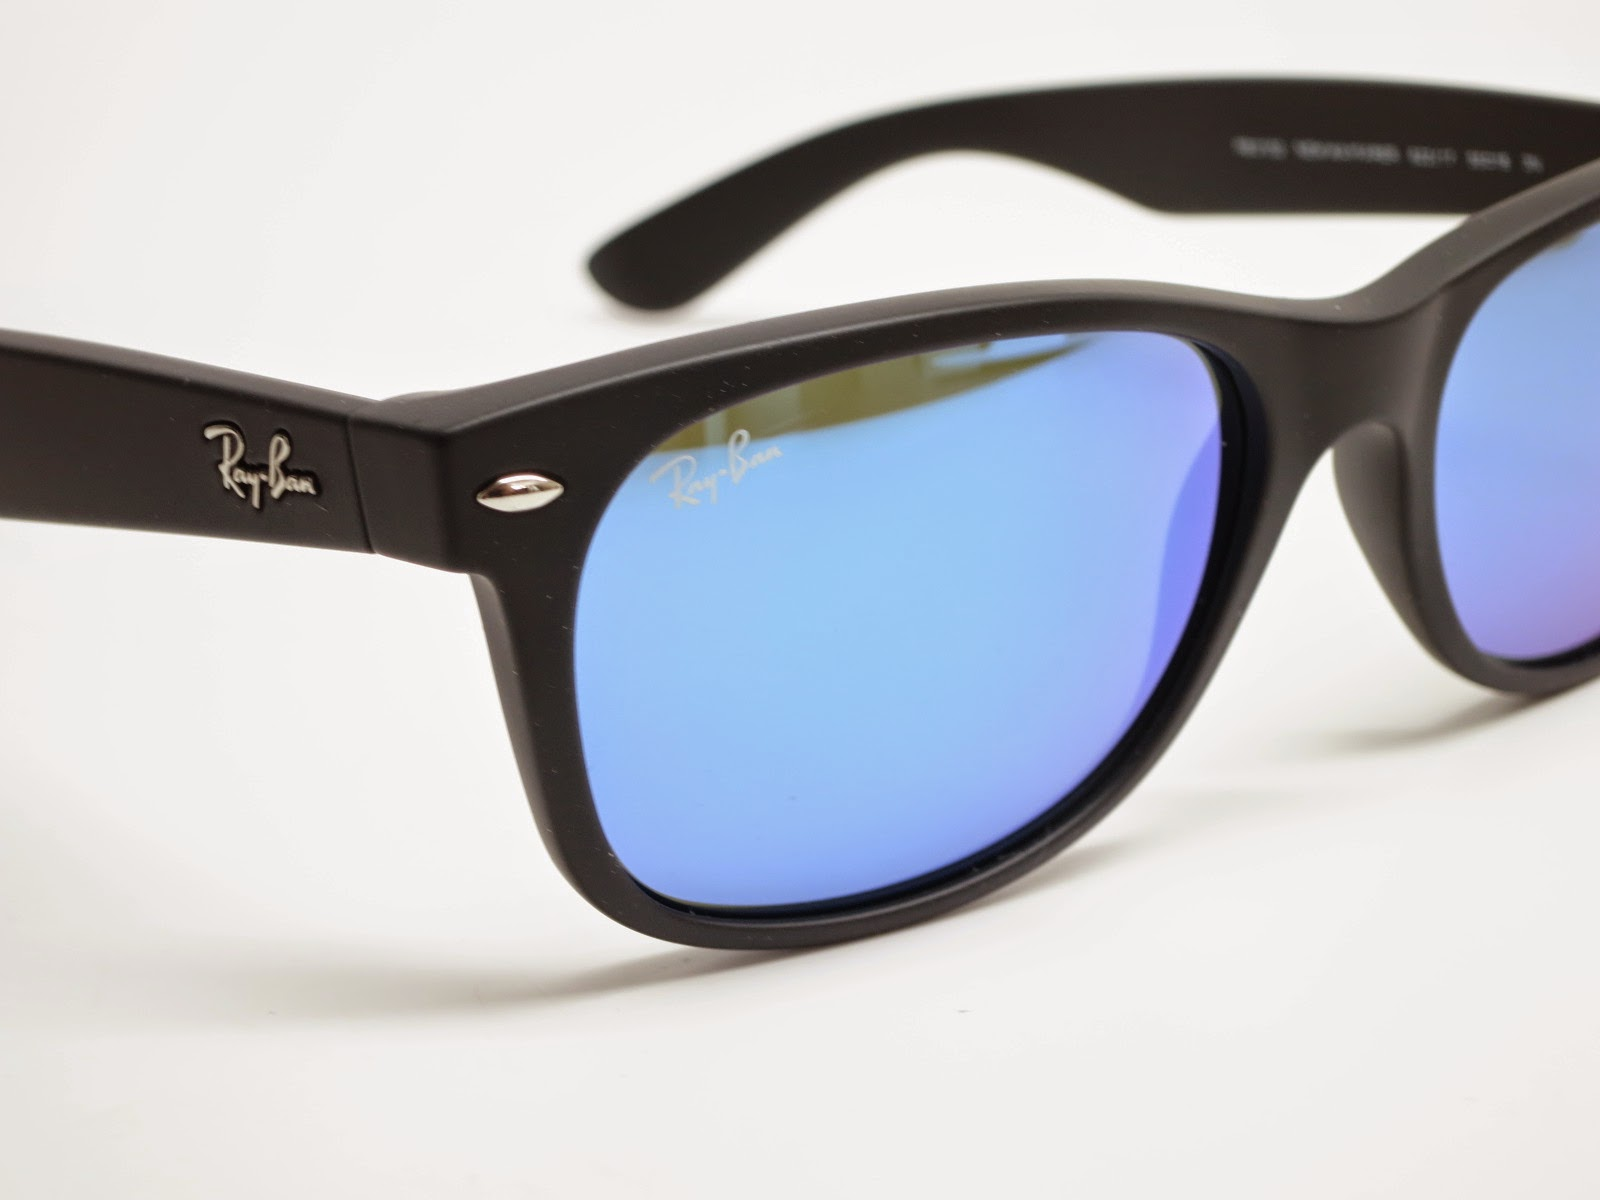 845ddf441e Ray Ban Rb8306 082 « One More Soul